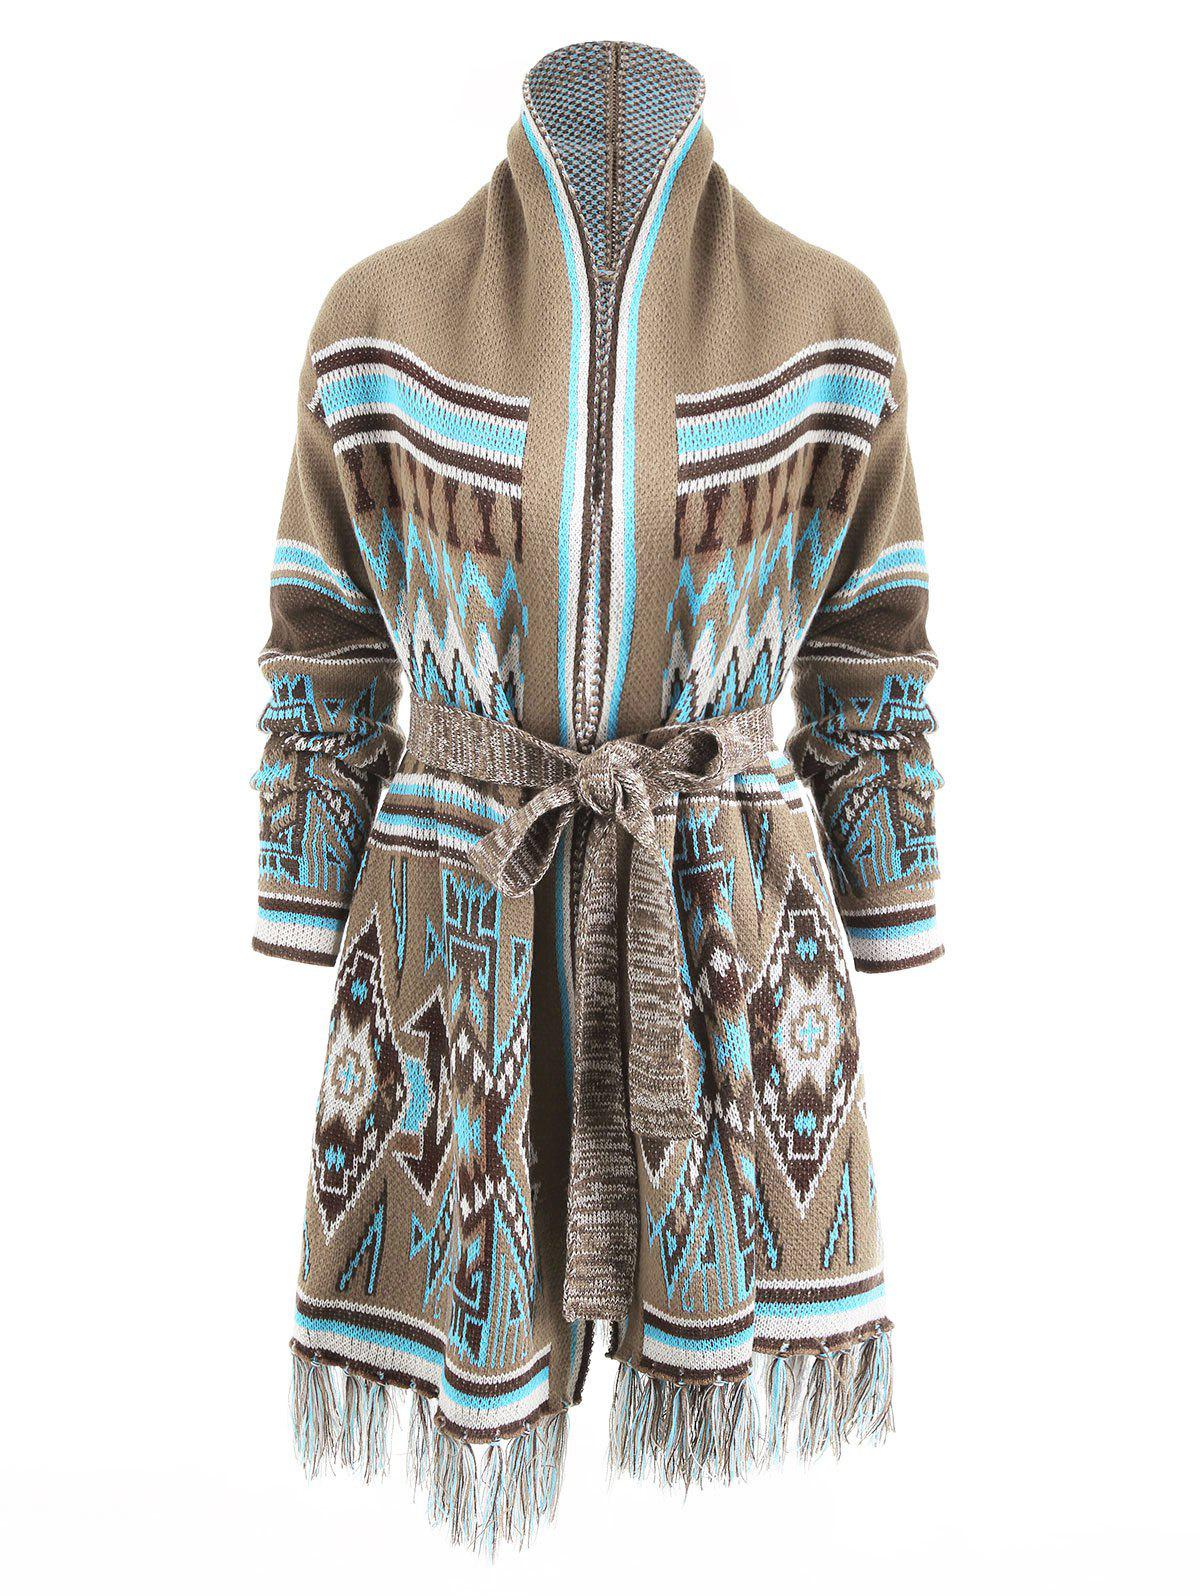 Aztec Geometric Fringed Knit Tunic Cardigan - COLORMIX 2XL